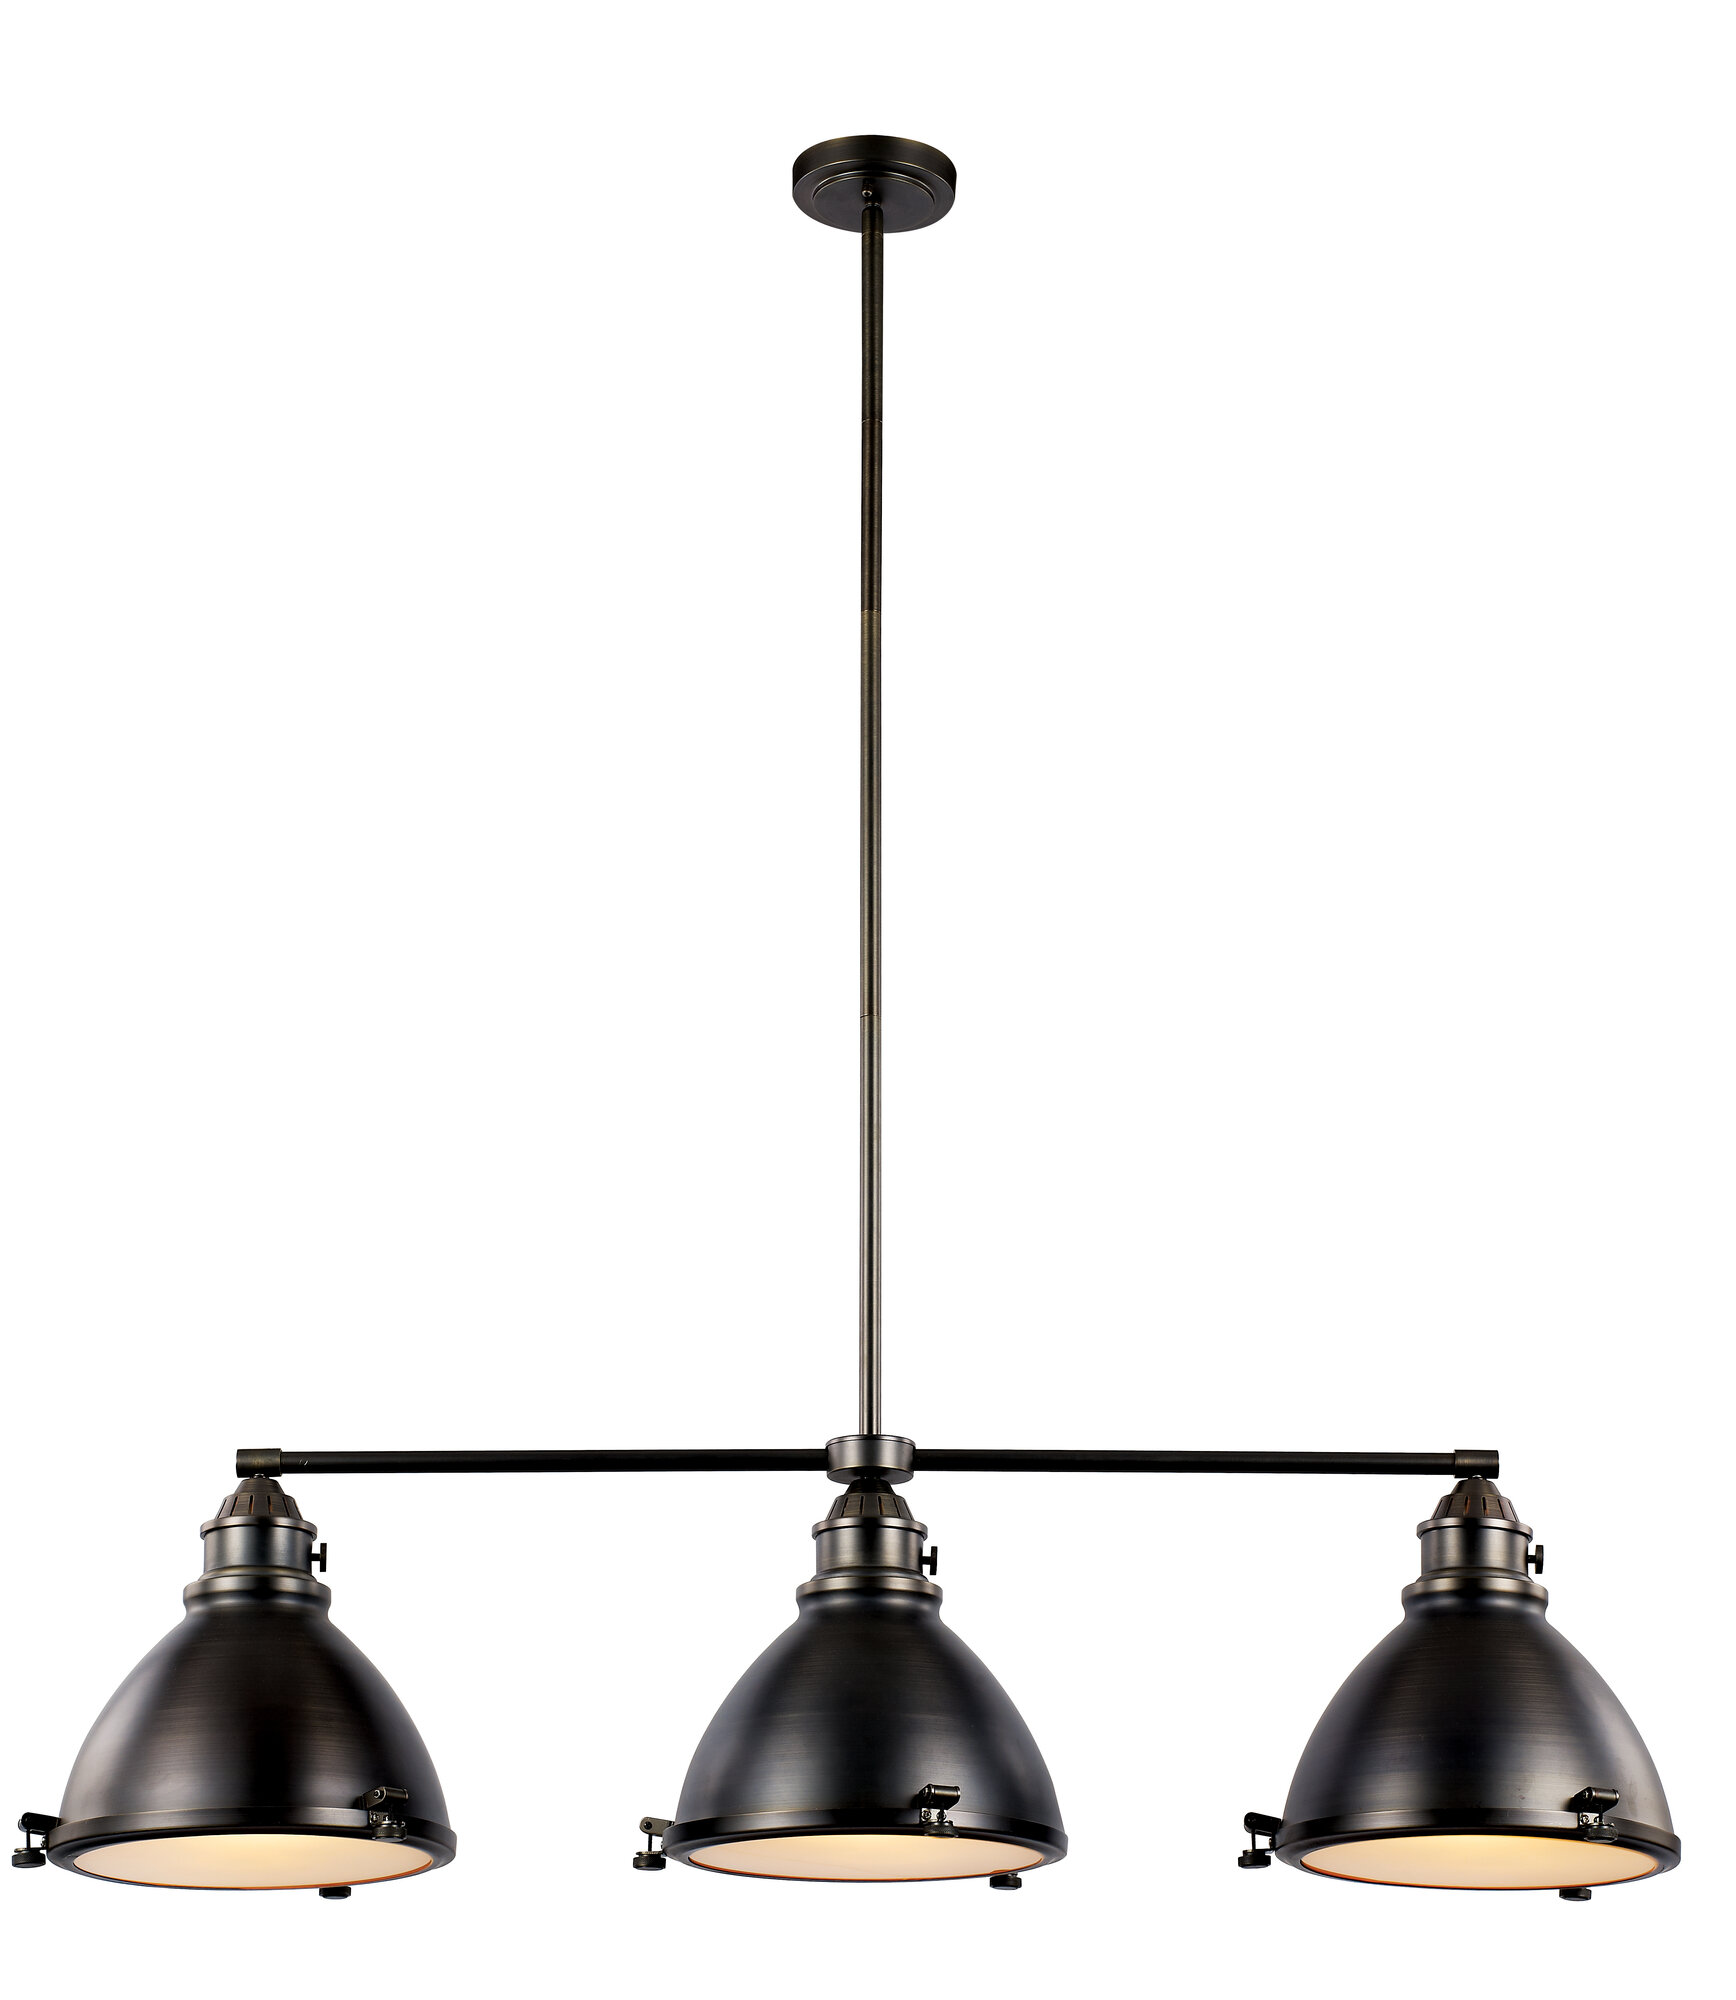 Transglobe lighting vintage 3 light kitchen island pendant for Island kitchen lighting fixtures